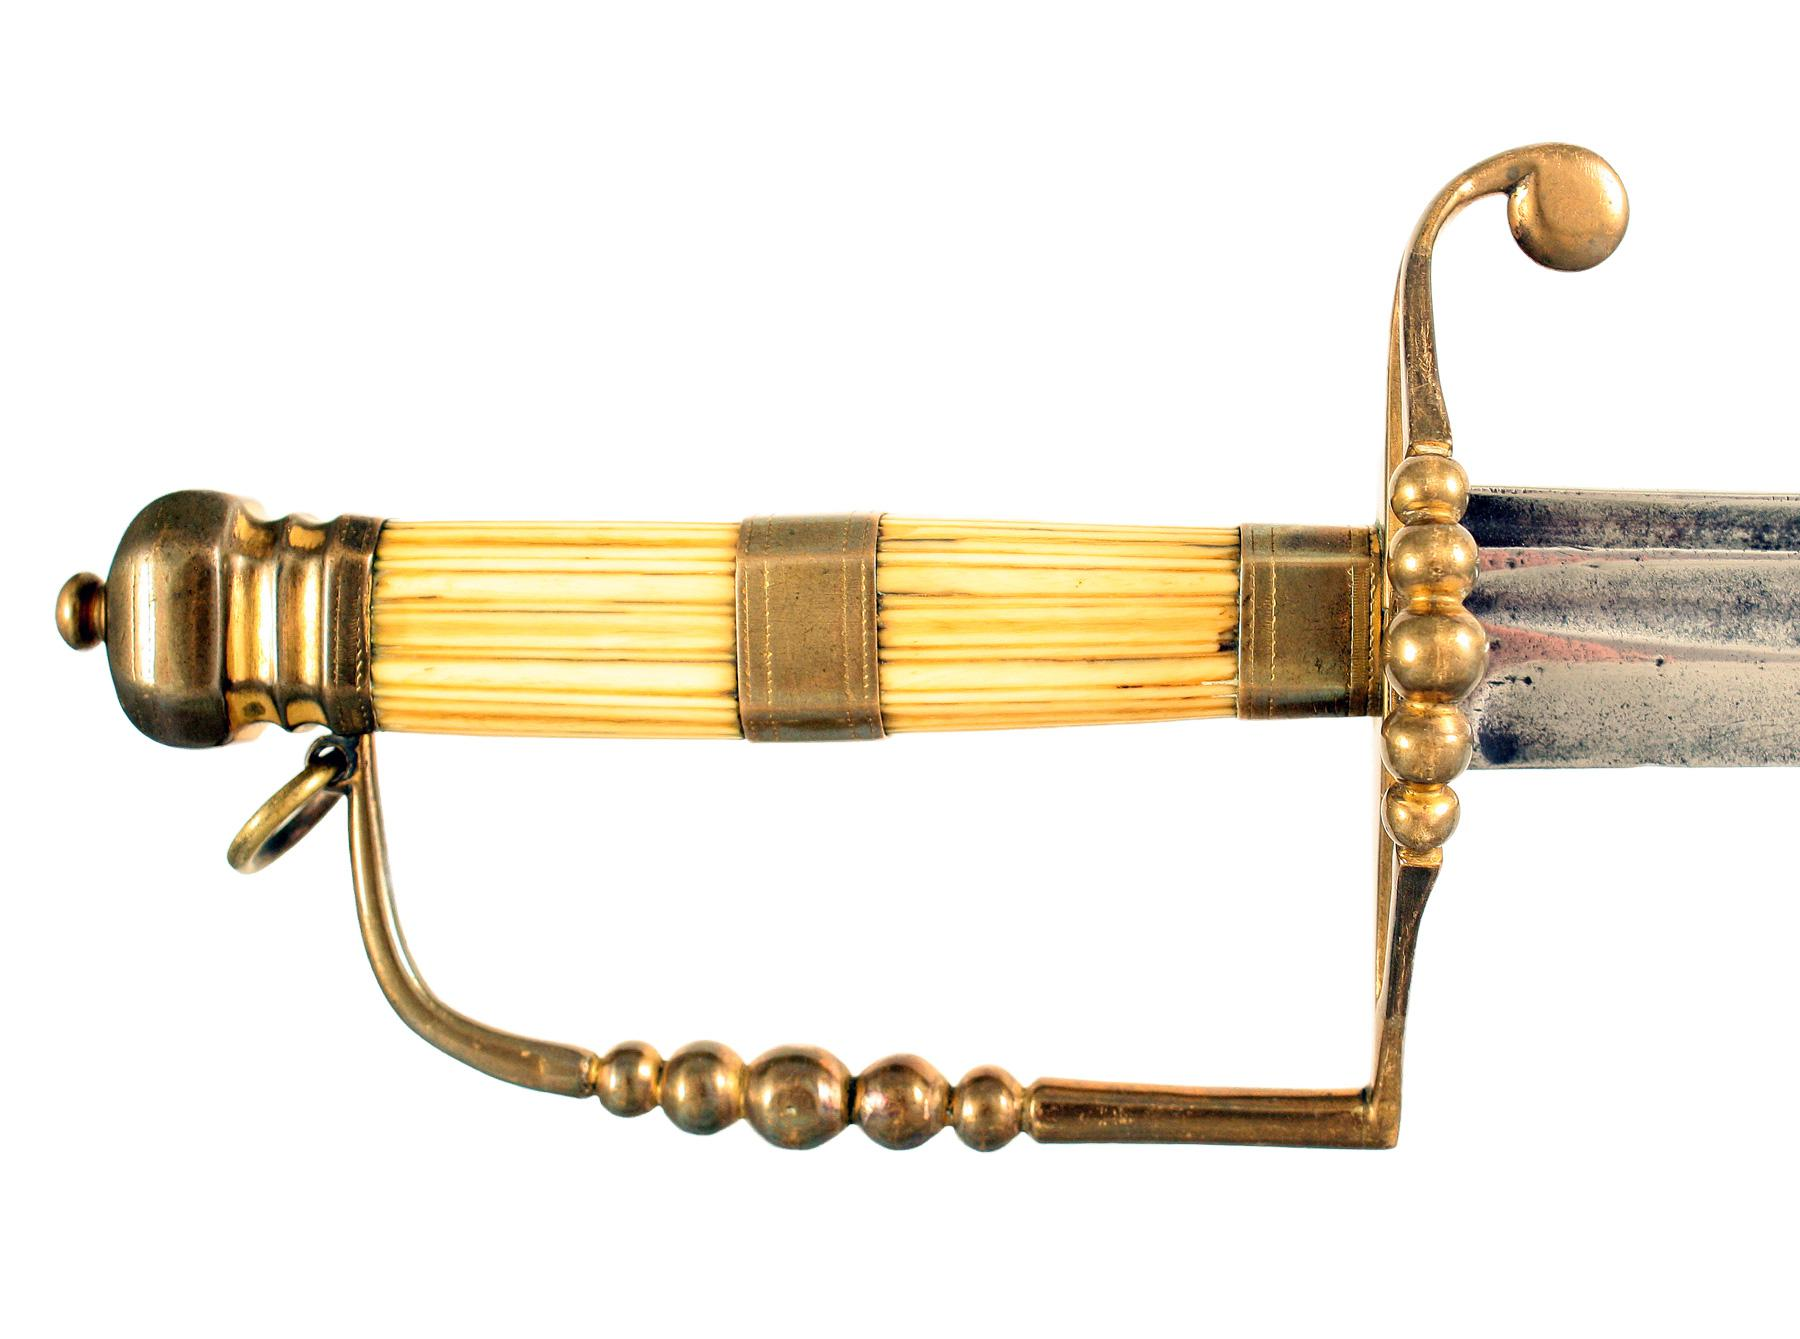 A Naval Spadroon Hilted Sword